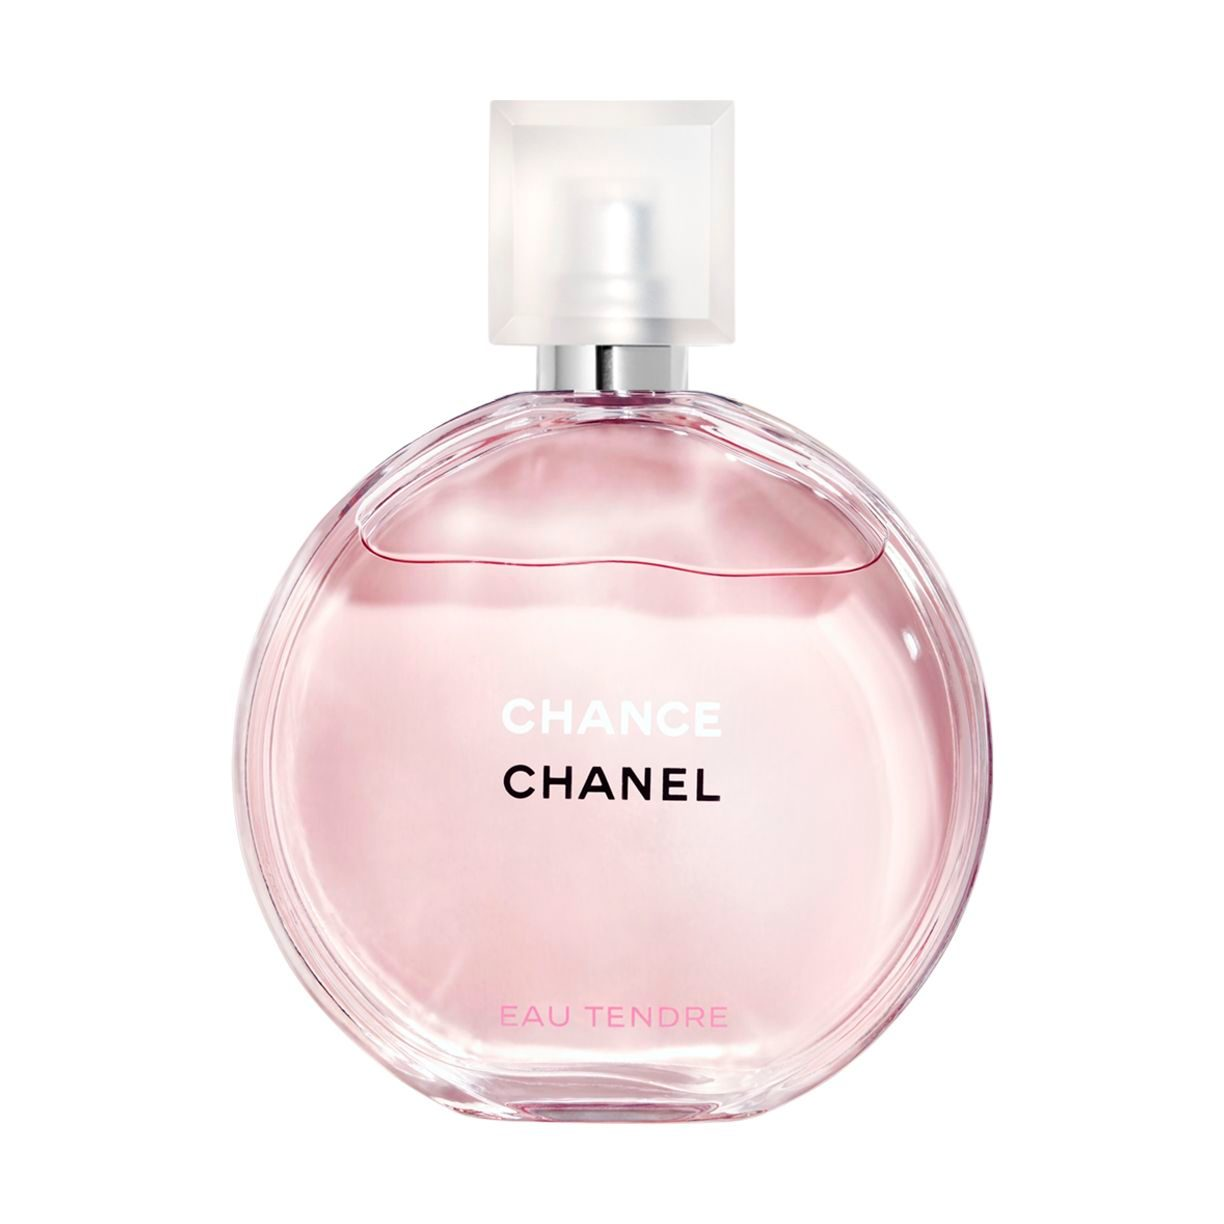 CHANCE EAU TENDRE EAU DE TOILETTE SPRAY 35ML